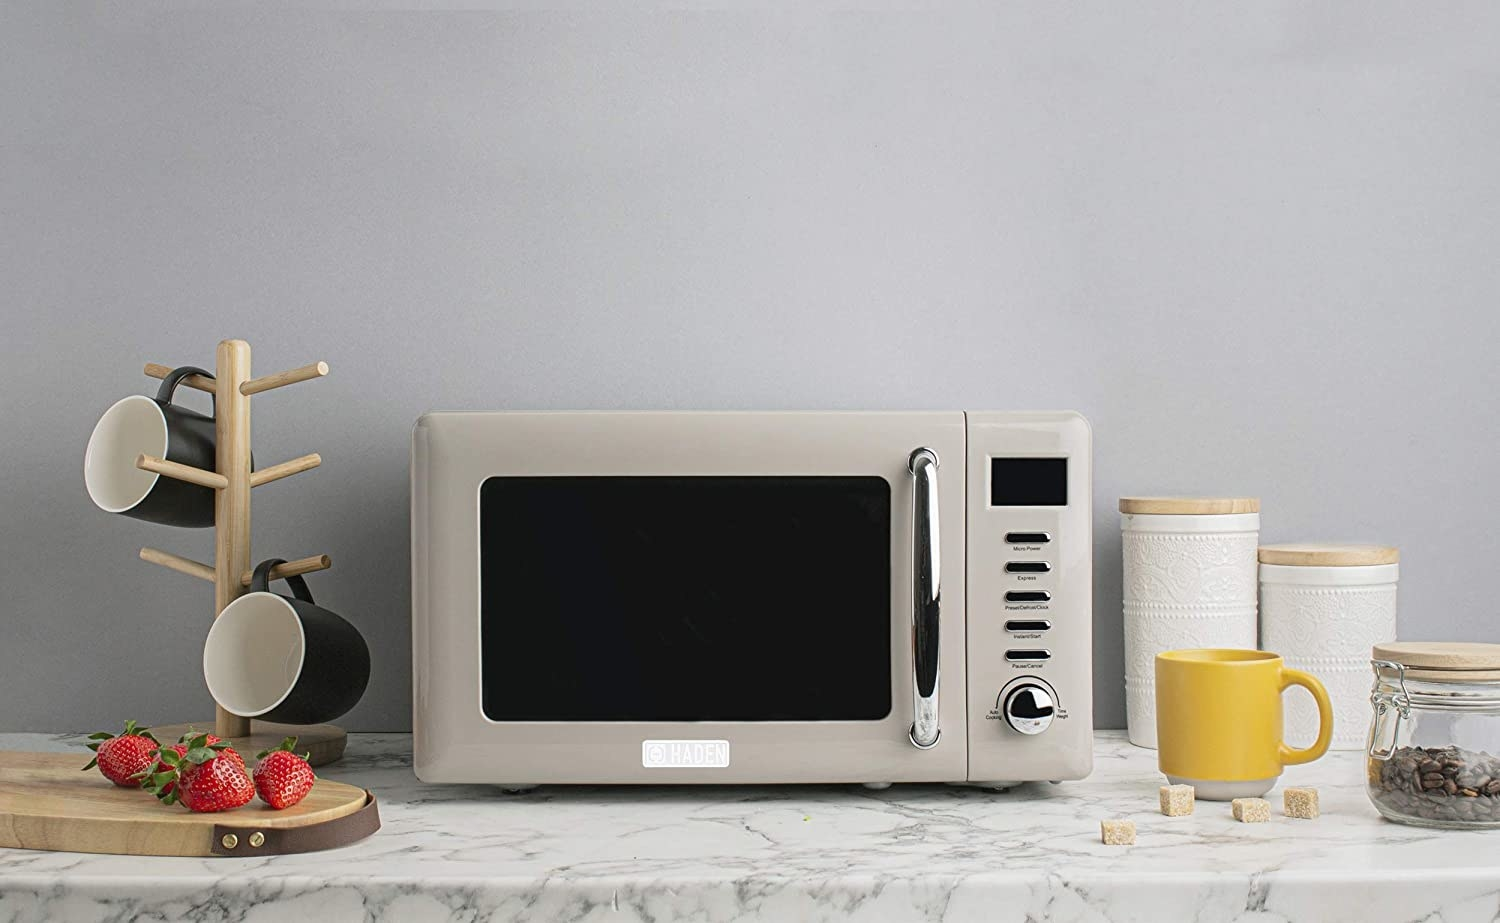 The retro, putty-colored microwave which has one dial and five buttons